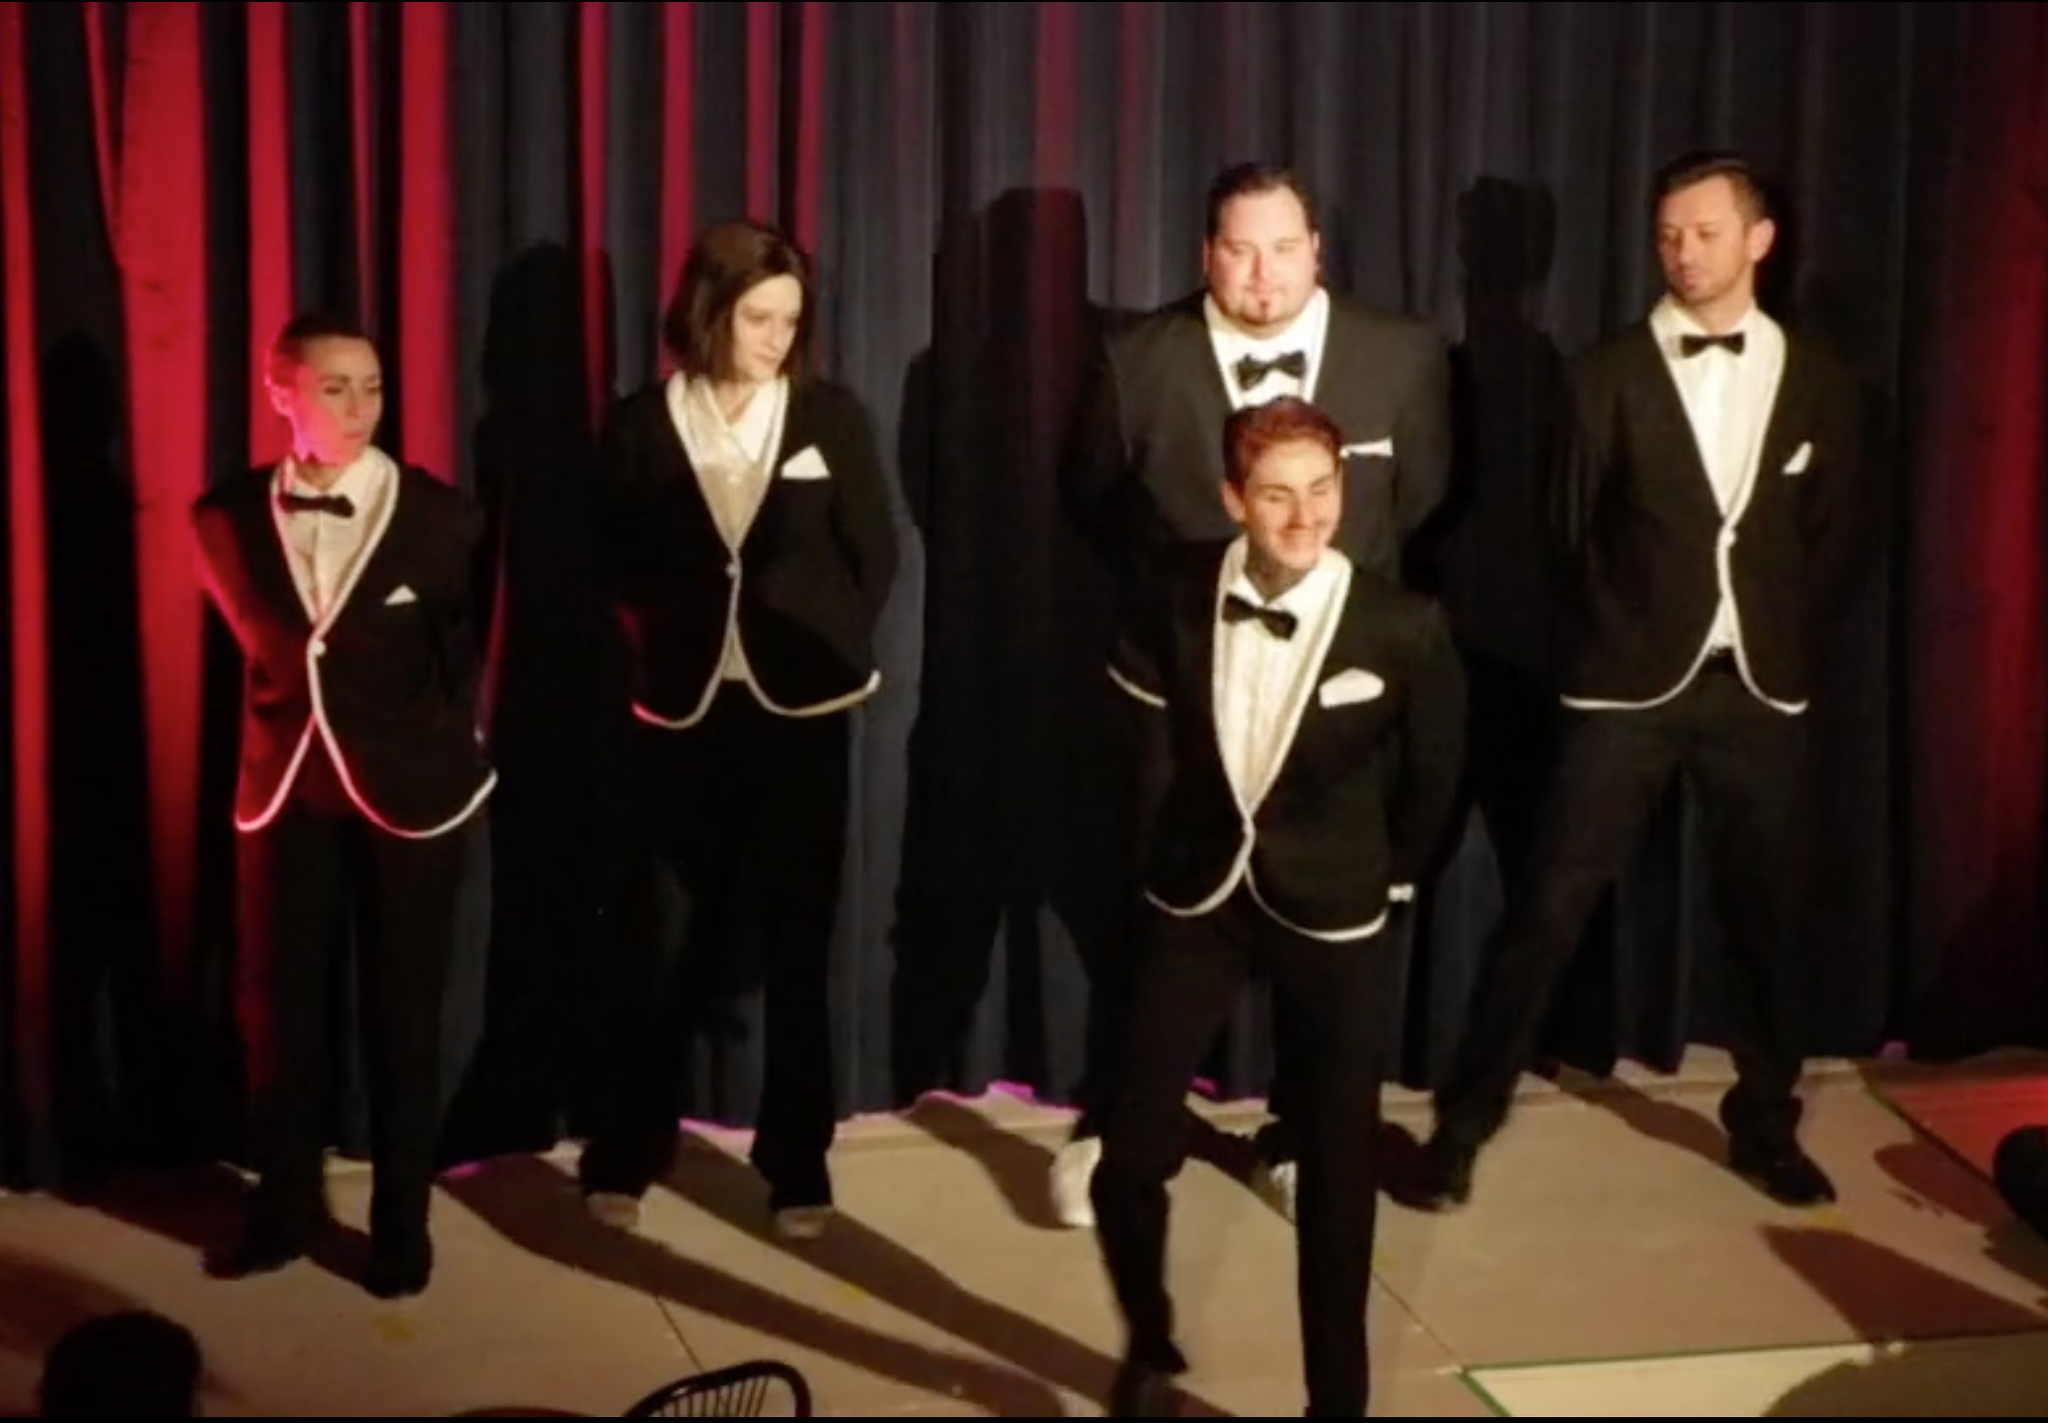 Cabaret 2017 - The Temptations (VIDEO)